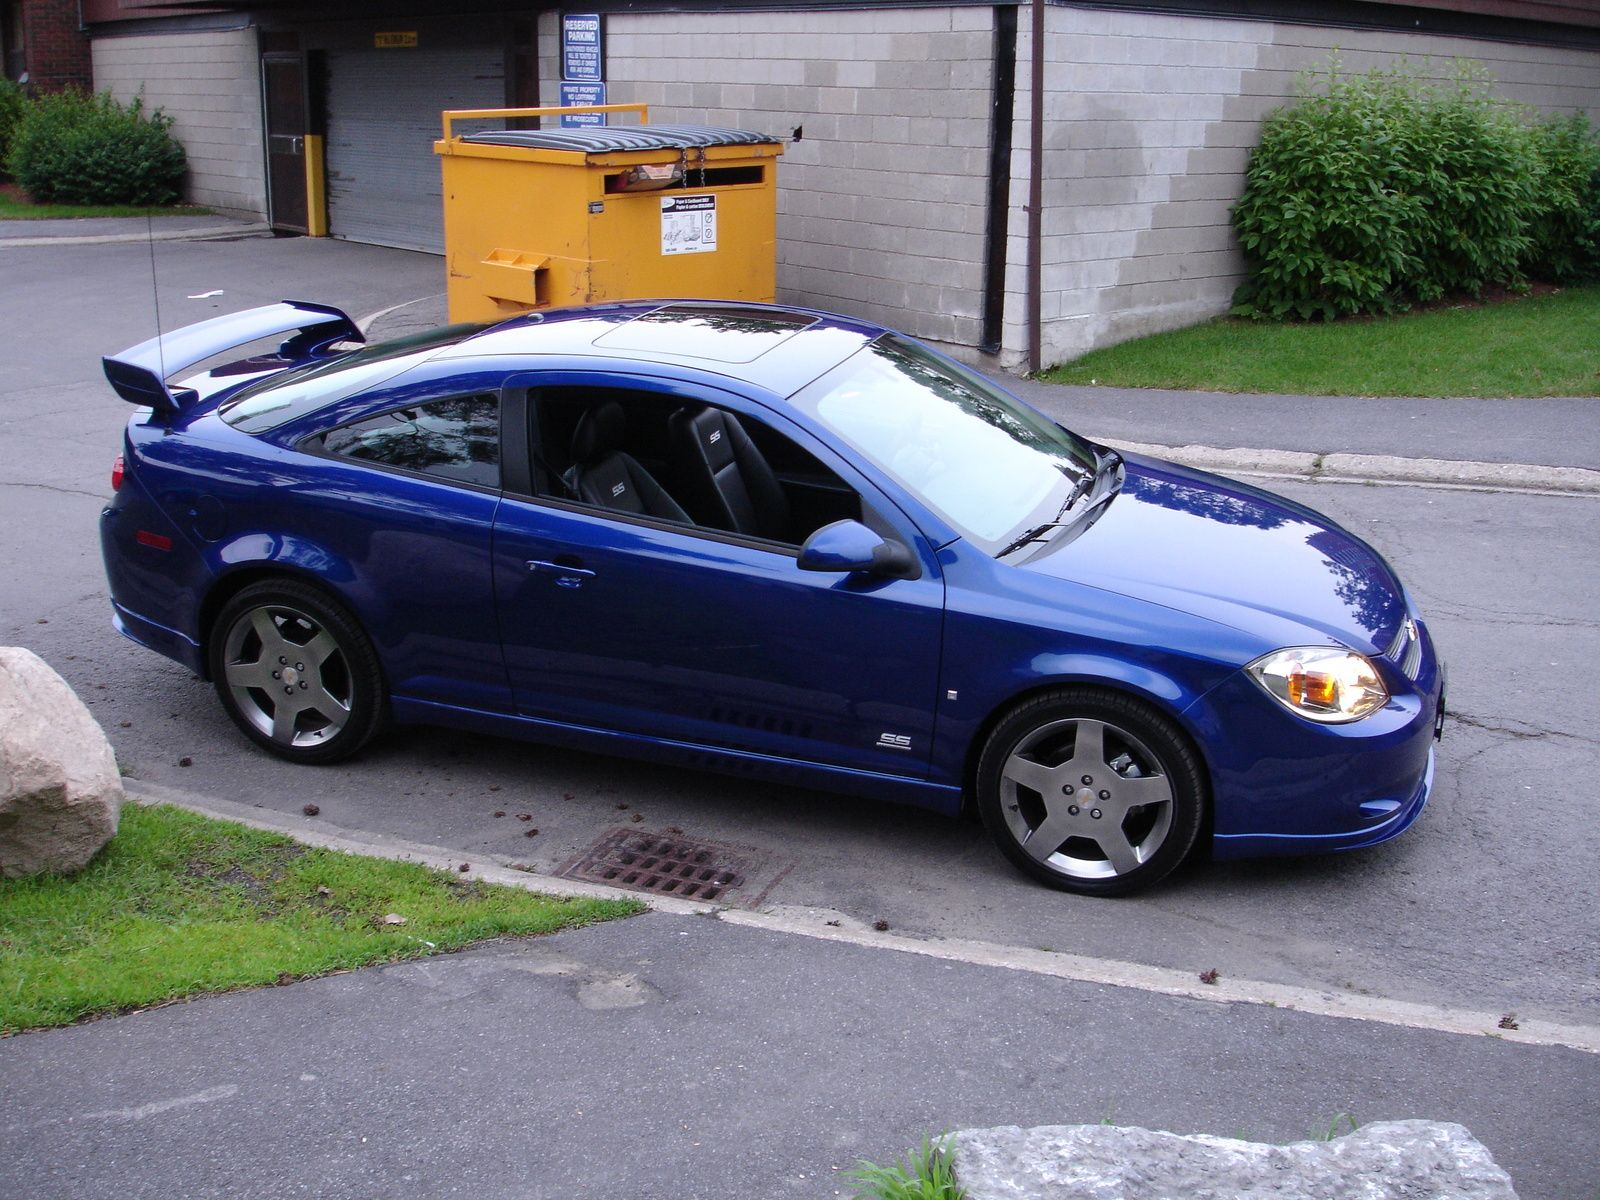 cobalt ss supercharged - Google Search | Classic/Muscle Cars/Modern